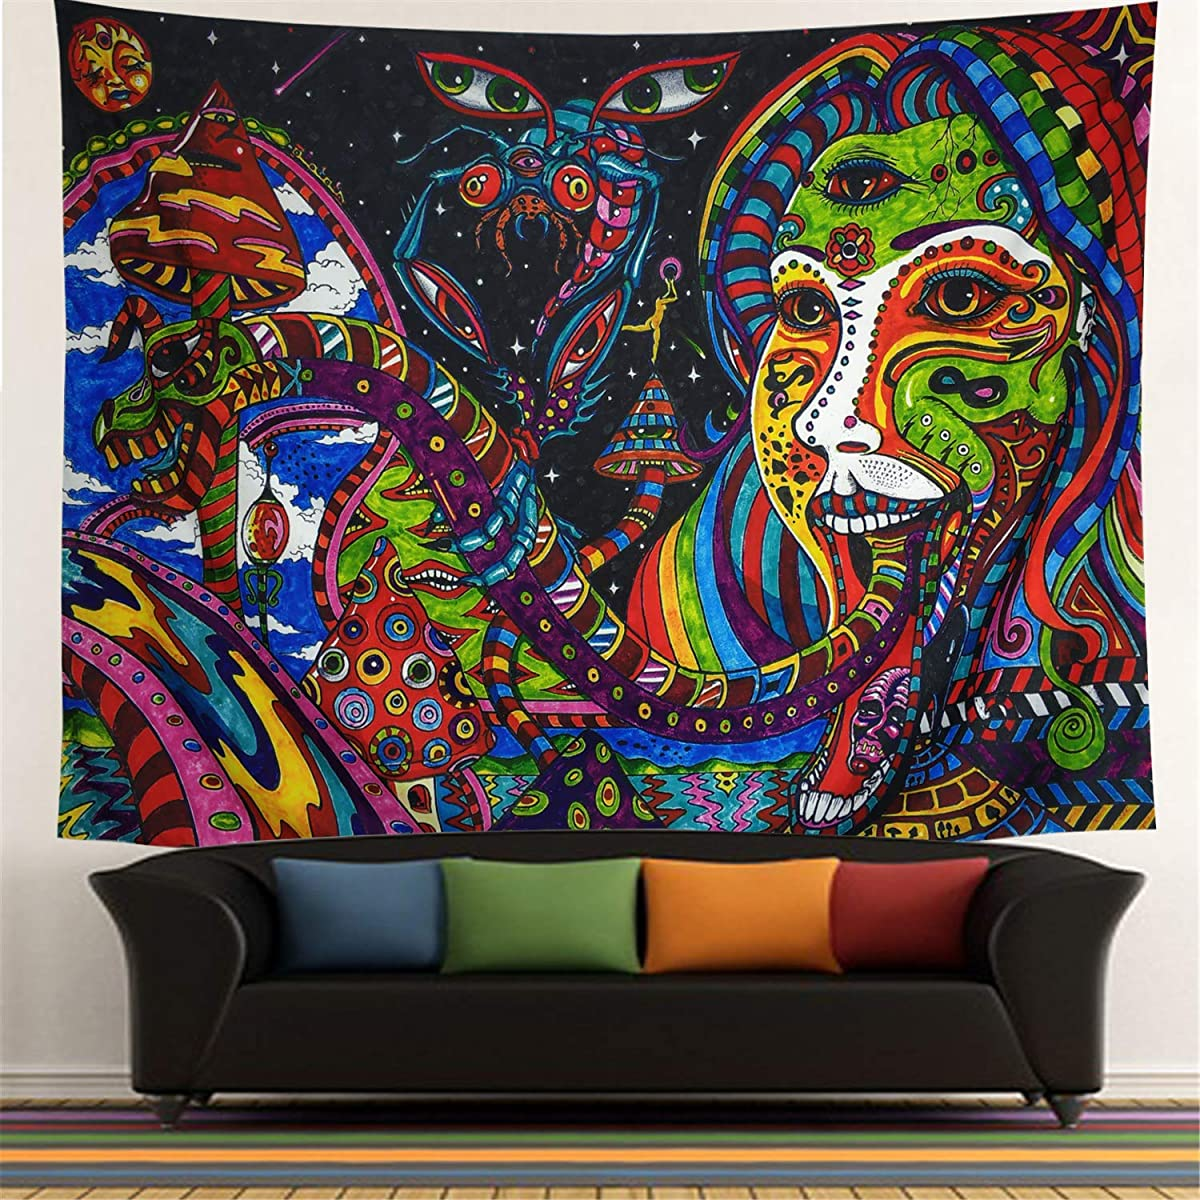 Colorful Tapestry Wall Tapestry Wall Hanging Psychedelic Tapestry Retro Pattern Hippie Mandala Bohemian Tapestry Ethnical Abstract Intricate Tapestry Wall Decor for Bedroom Living Room Dorm